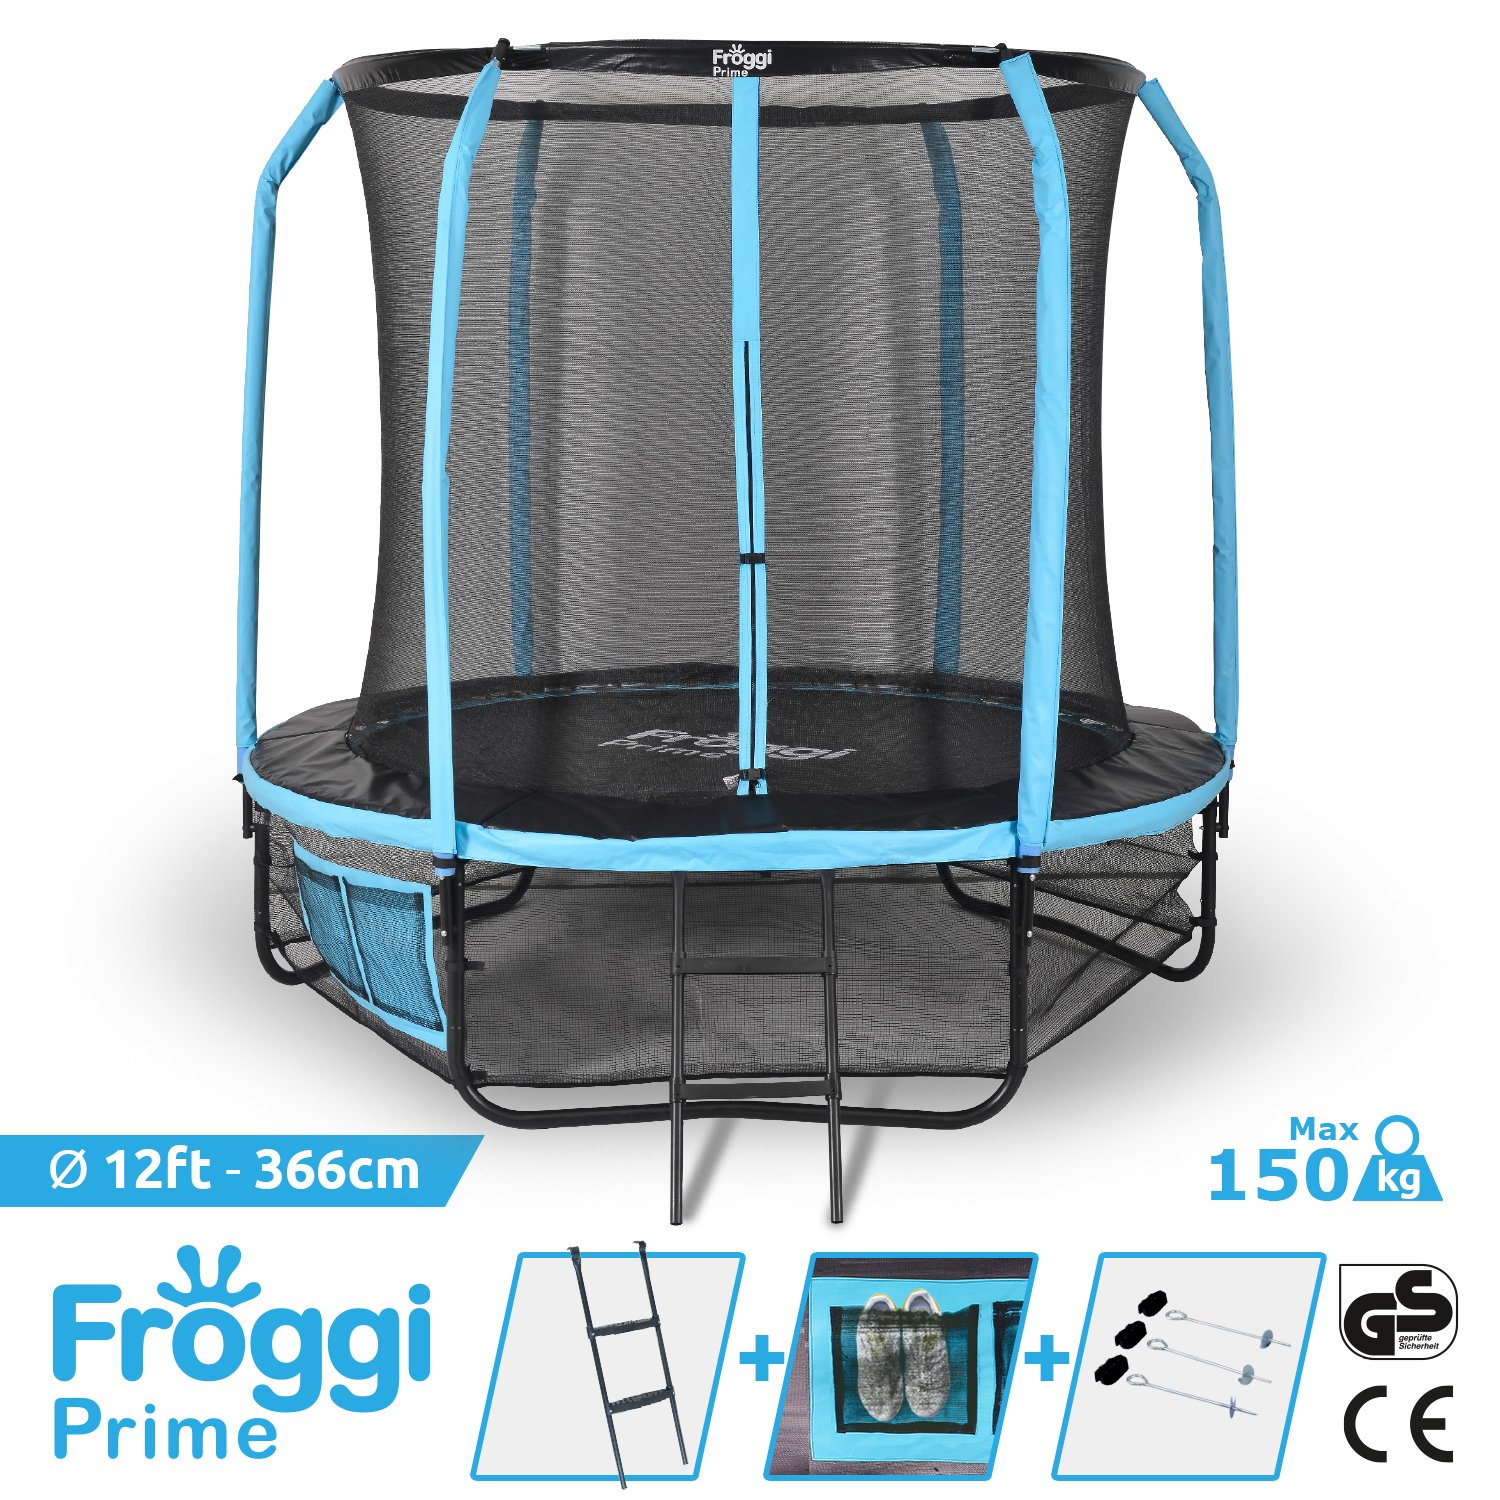 OUTDOOR TRAMPOLINE FROGGI PRIME 366 CM 12FT CE & GS STANDARDS 5 JAHRE GARANTIE